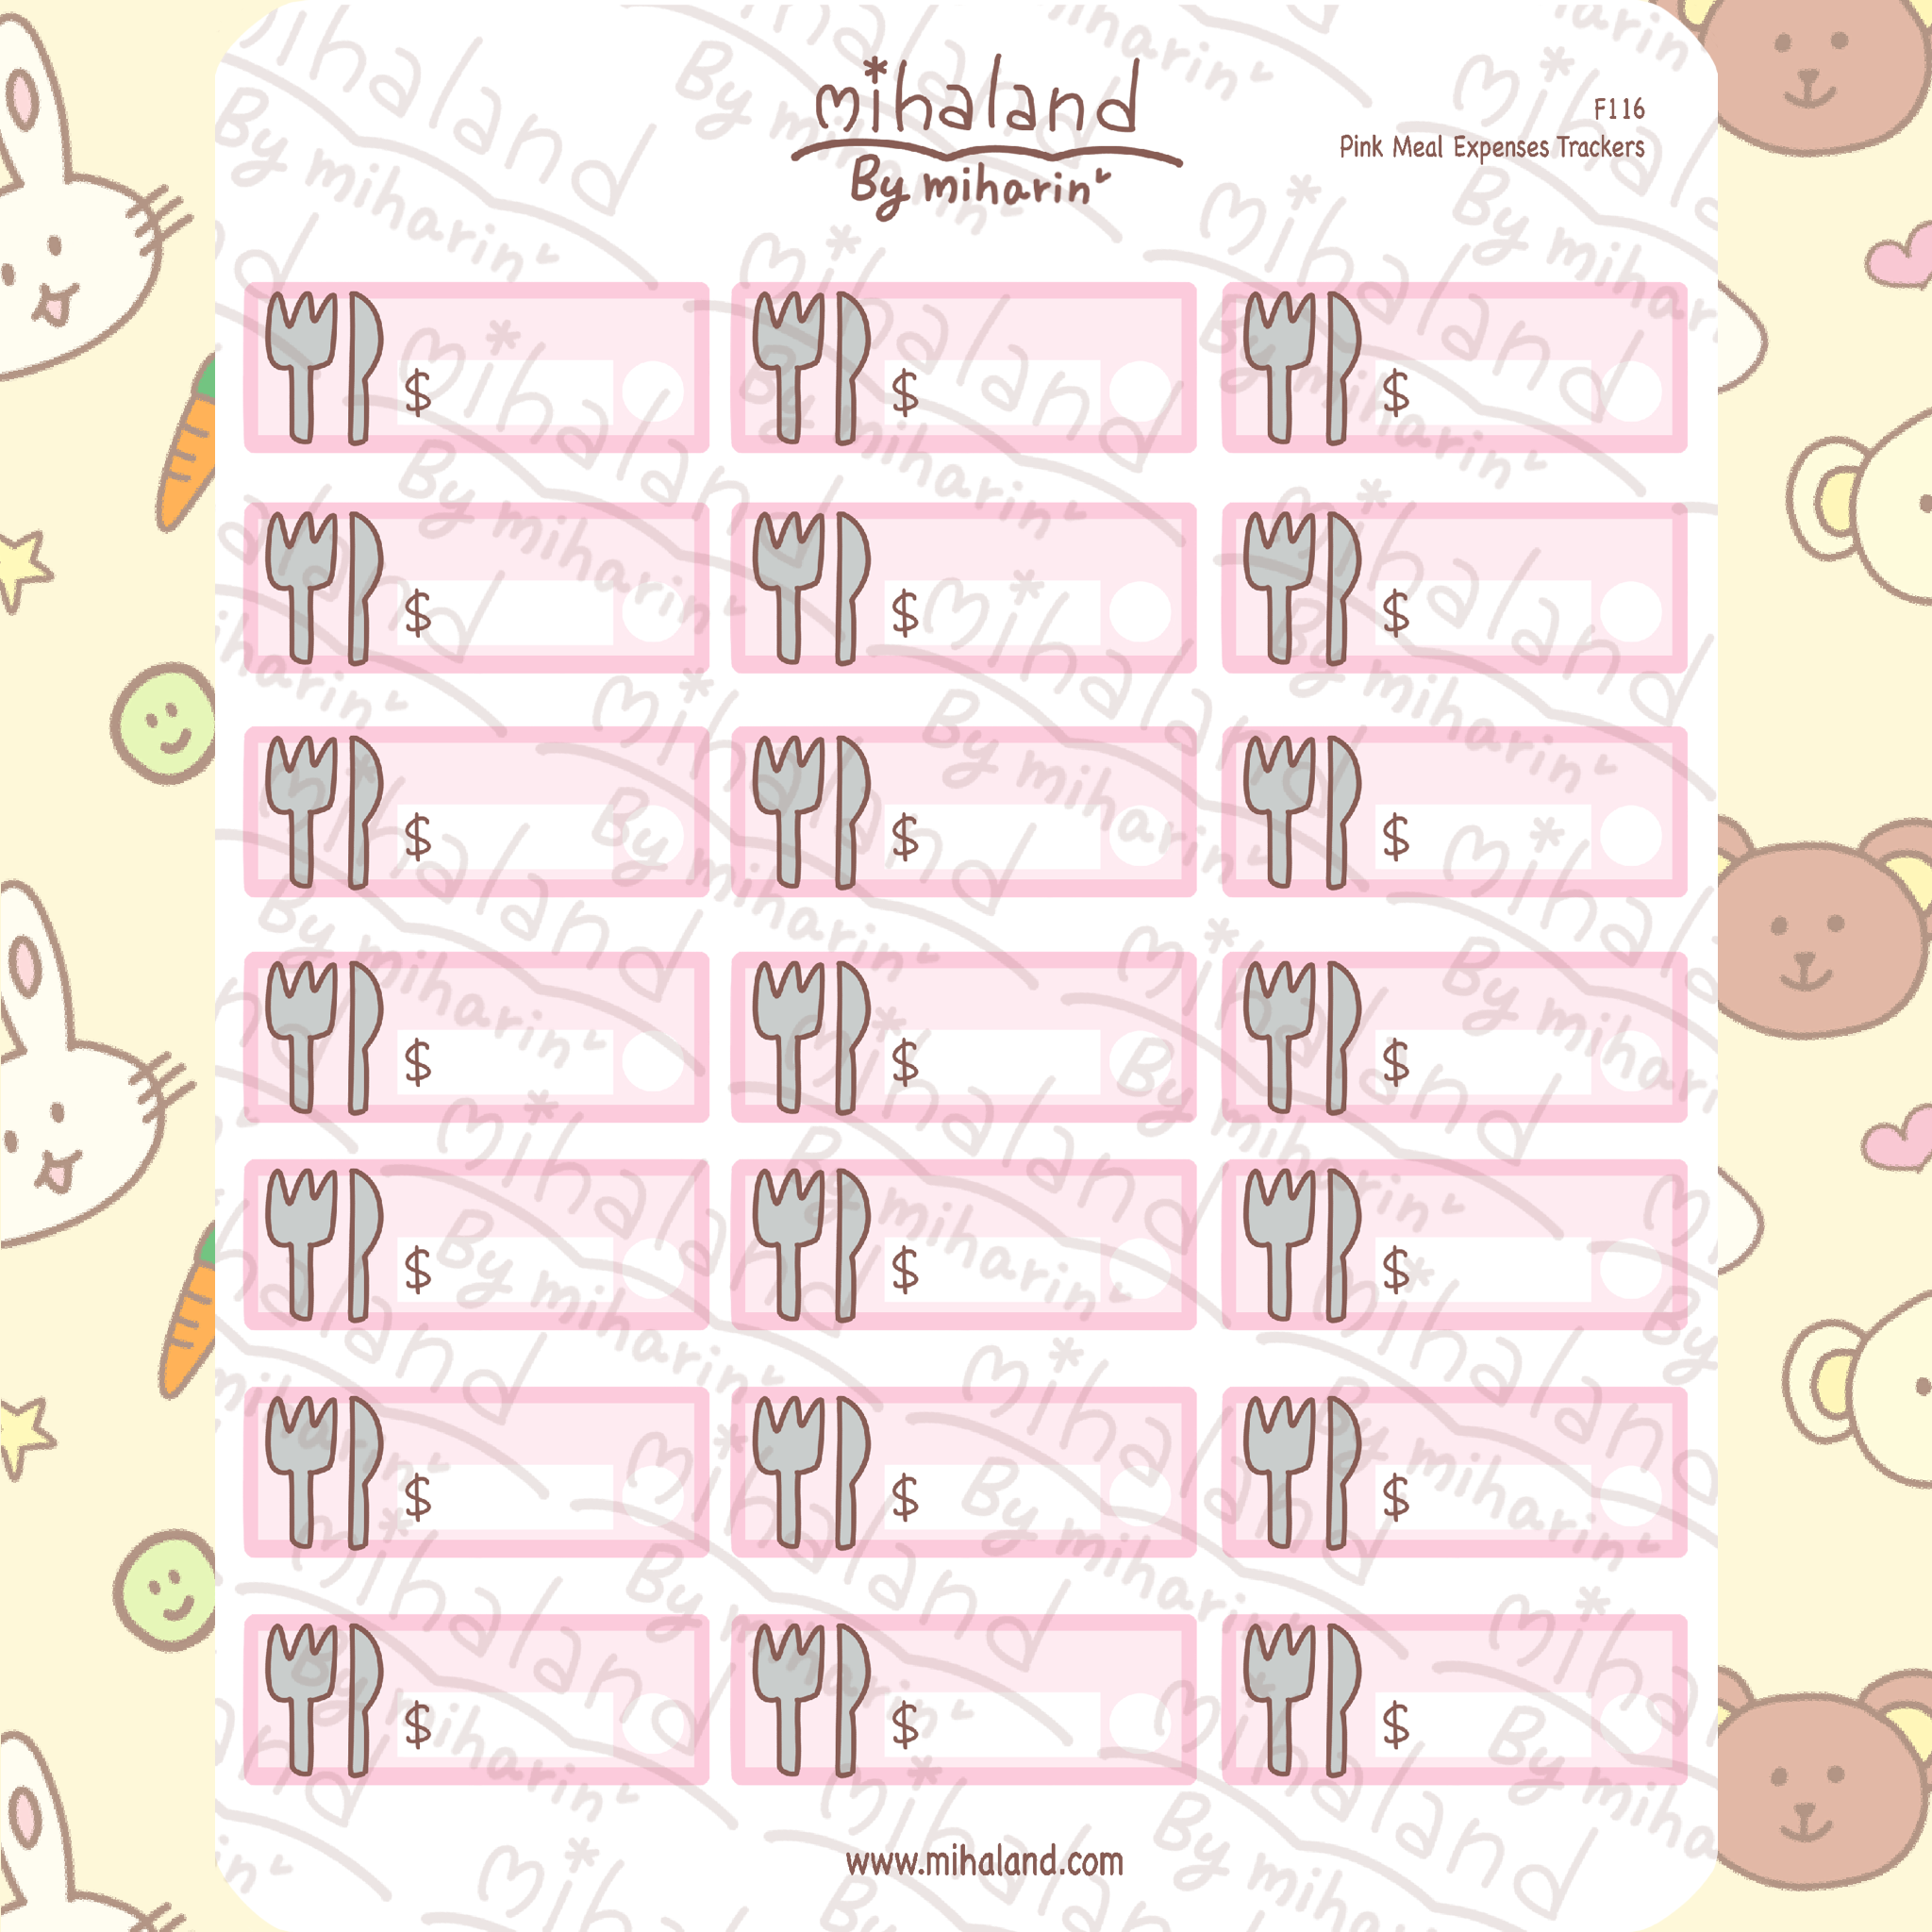 Pink Meal Expenses Trackers Planner Stickers (F116)